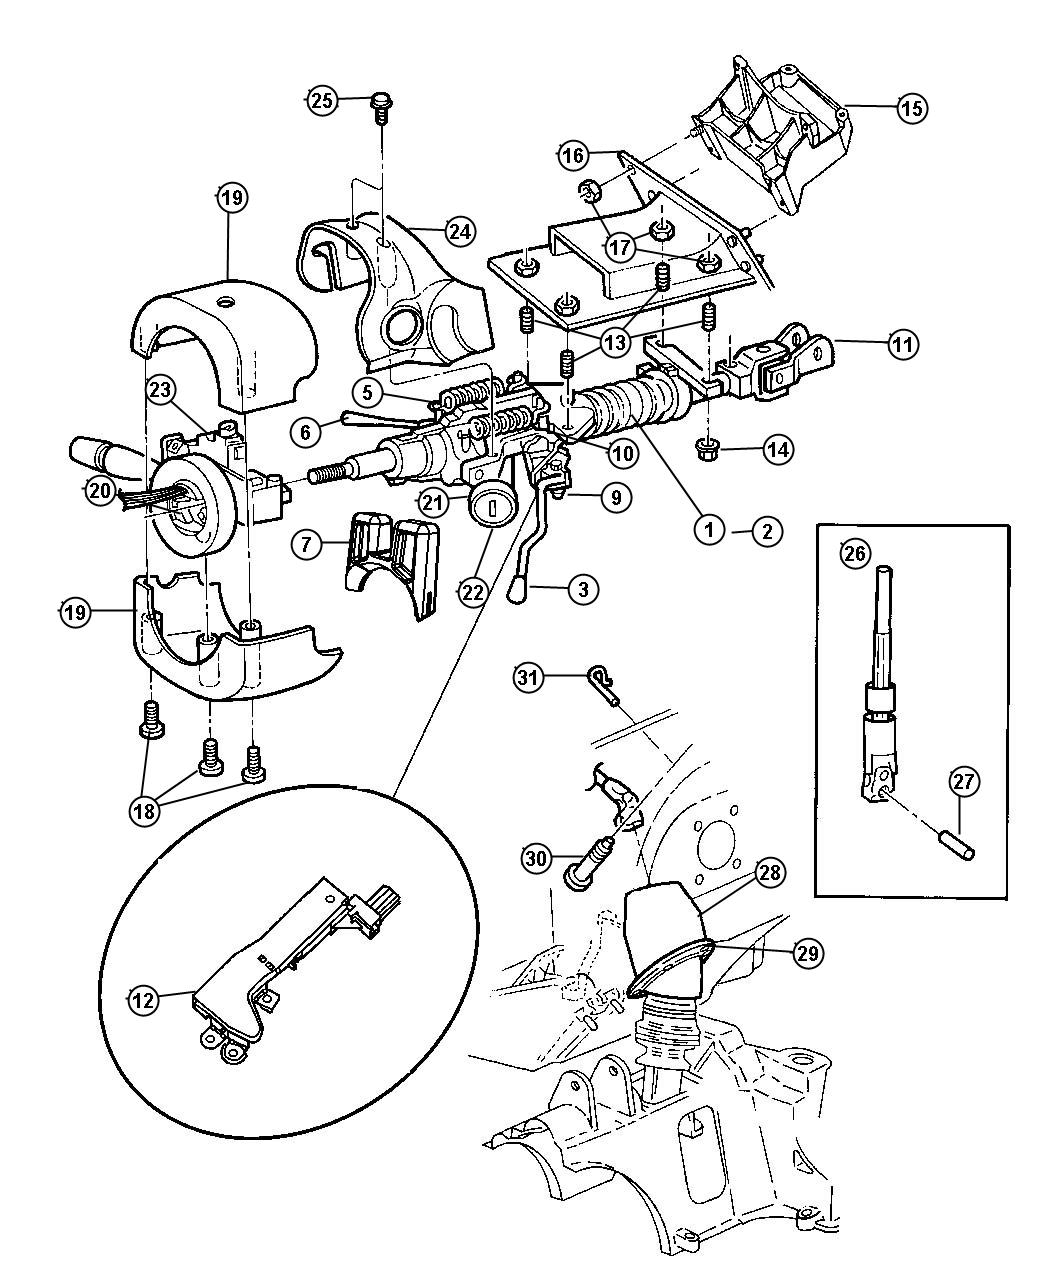 Location On 97 Ford F 150 On 97 Lesabre Steering Column Parts Diagram